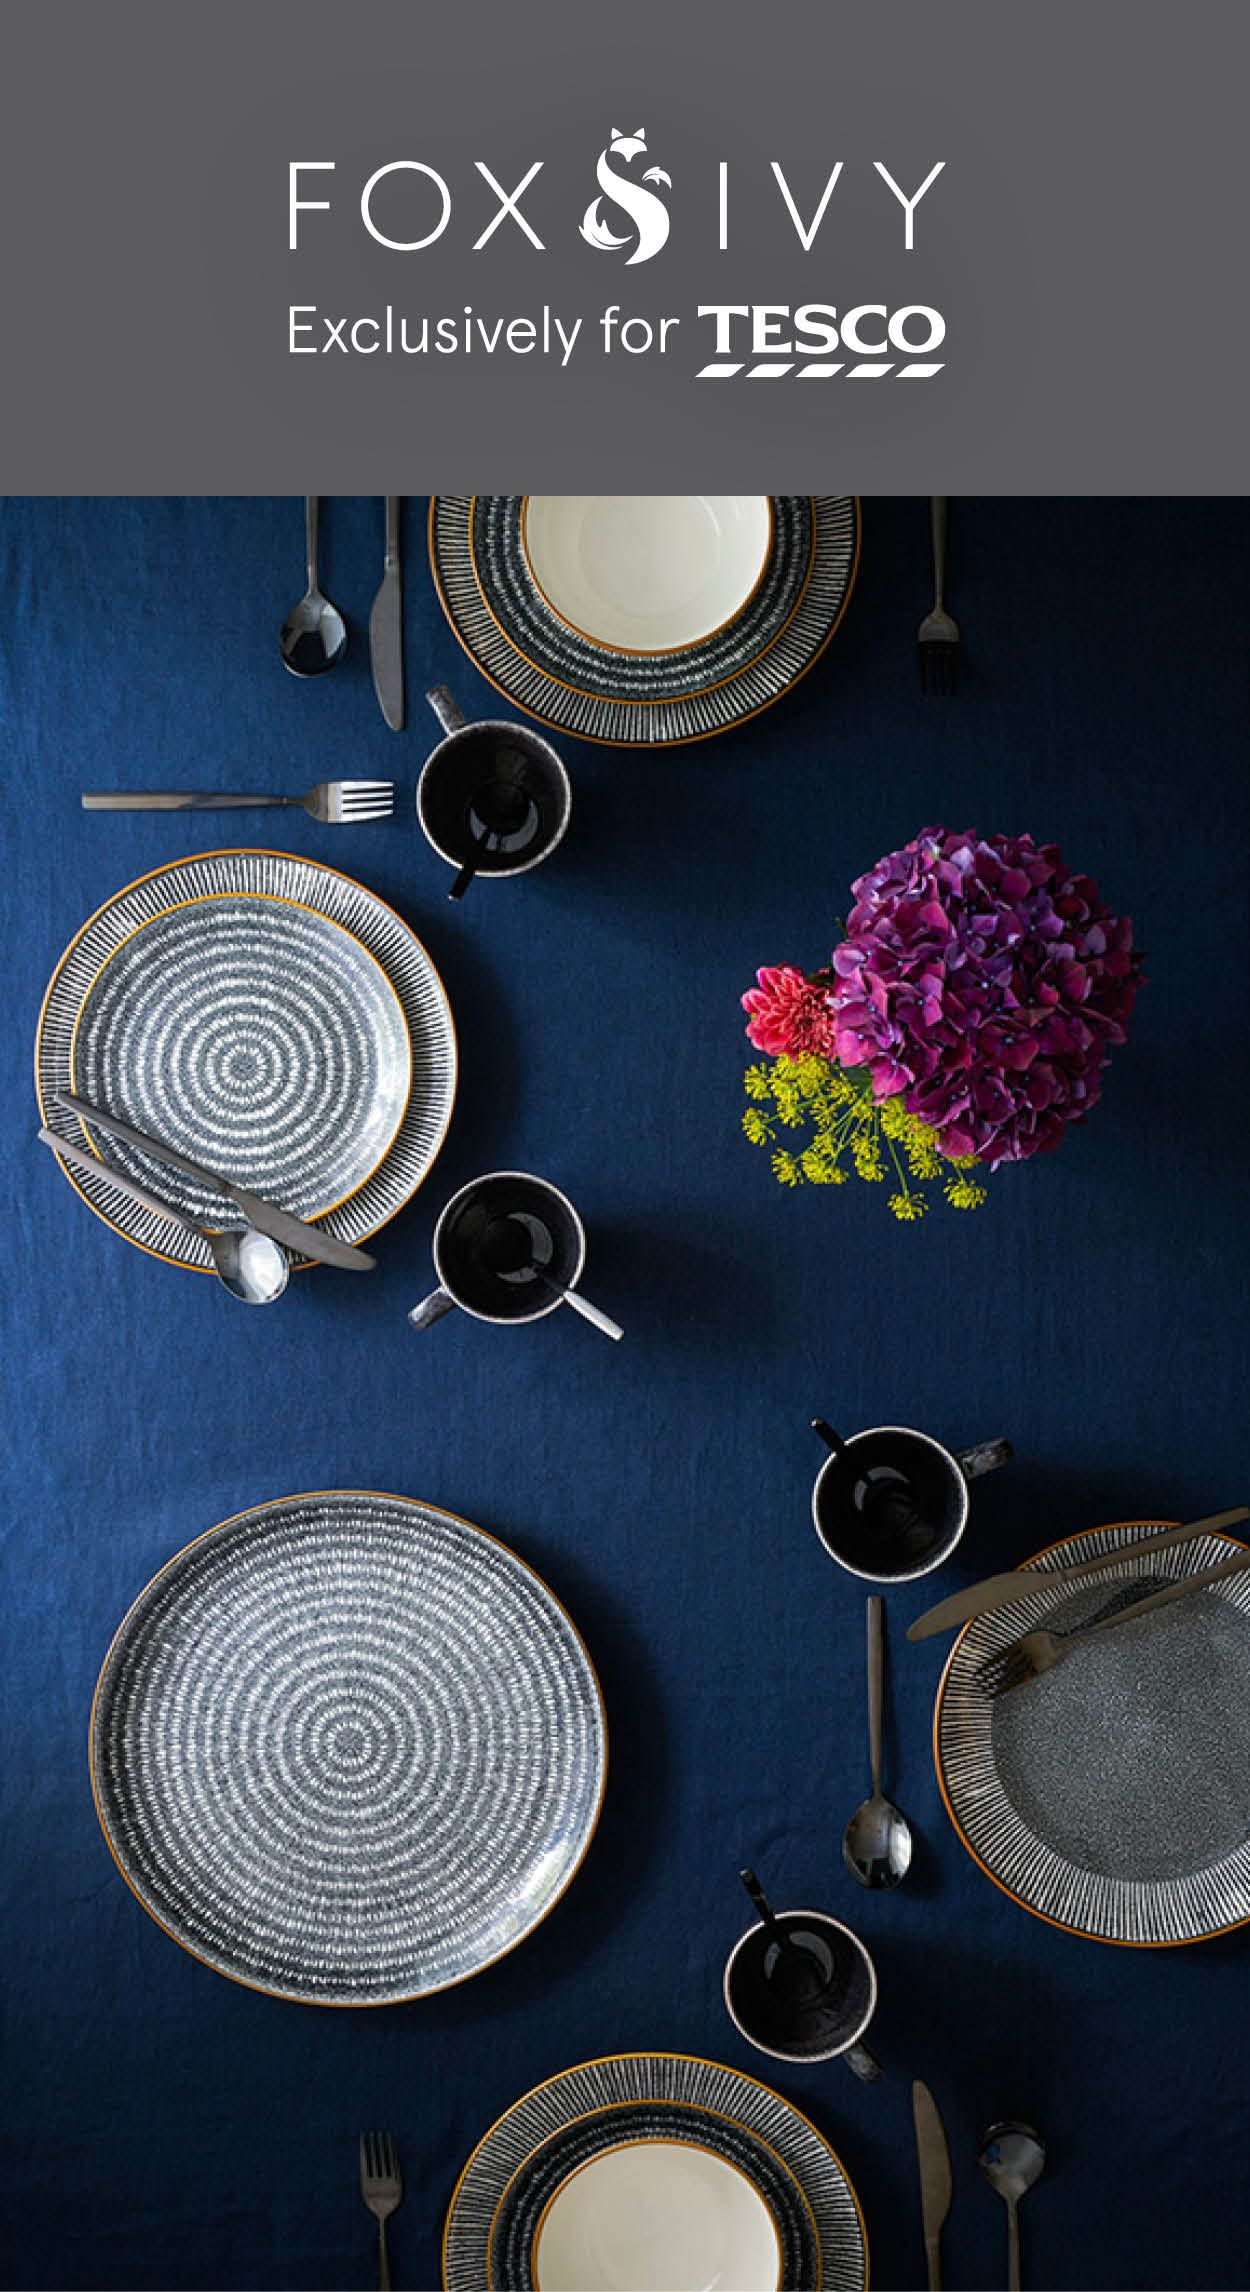 Whether You Re Hosting A Feast Or Cosying Up At Home Luxury Tableware Turns Eating Into An Event This On Trend Monoch Luxury Tableware Tableware Design Tesco